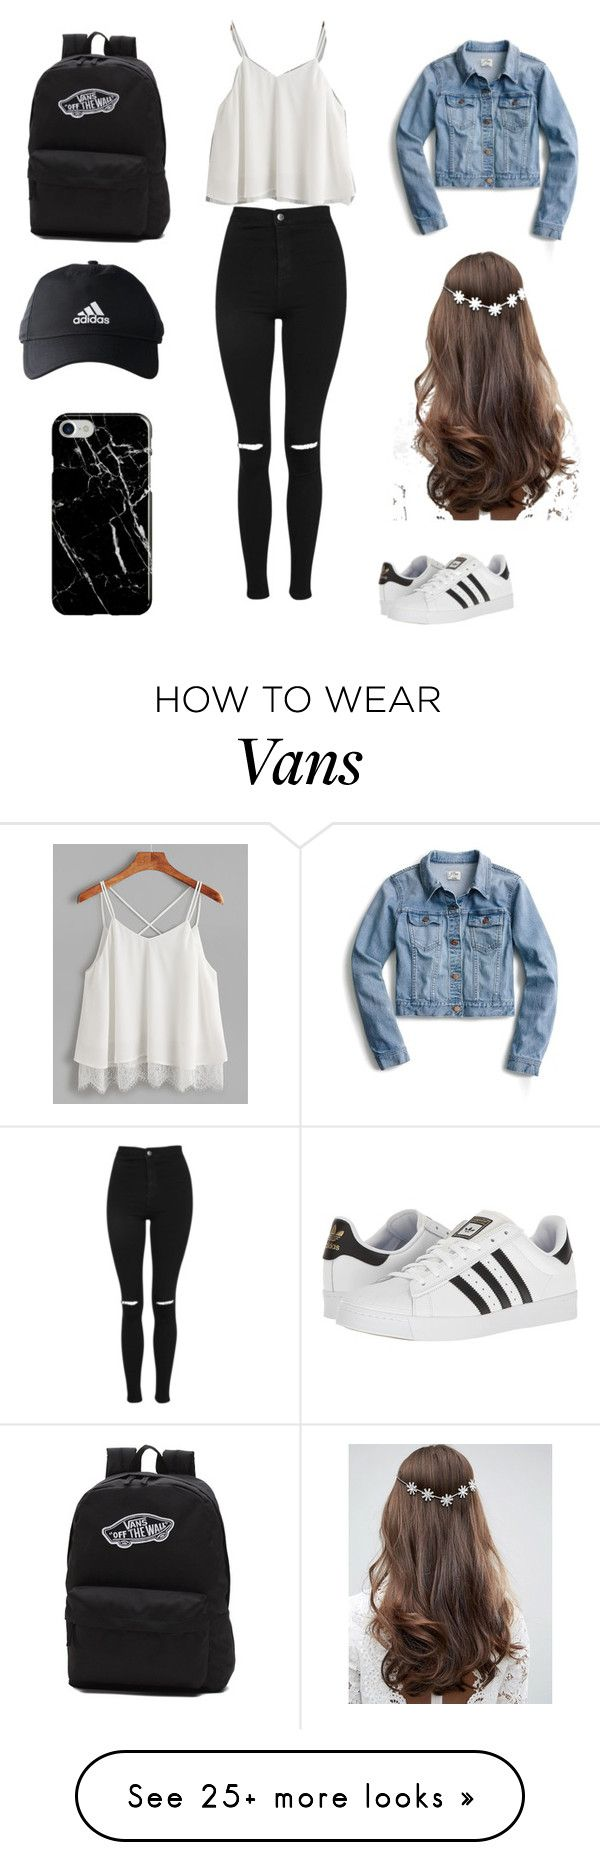 """""""Tumblr Whit Girl"""" by michaelamaeberg101 on Polyvore featuring adidas, Topshop, J.Crew, Vans, ASOS and Recover"""